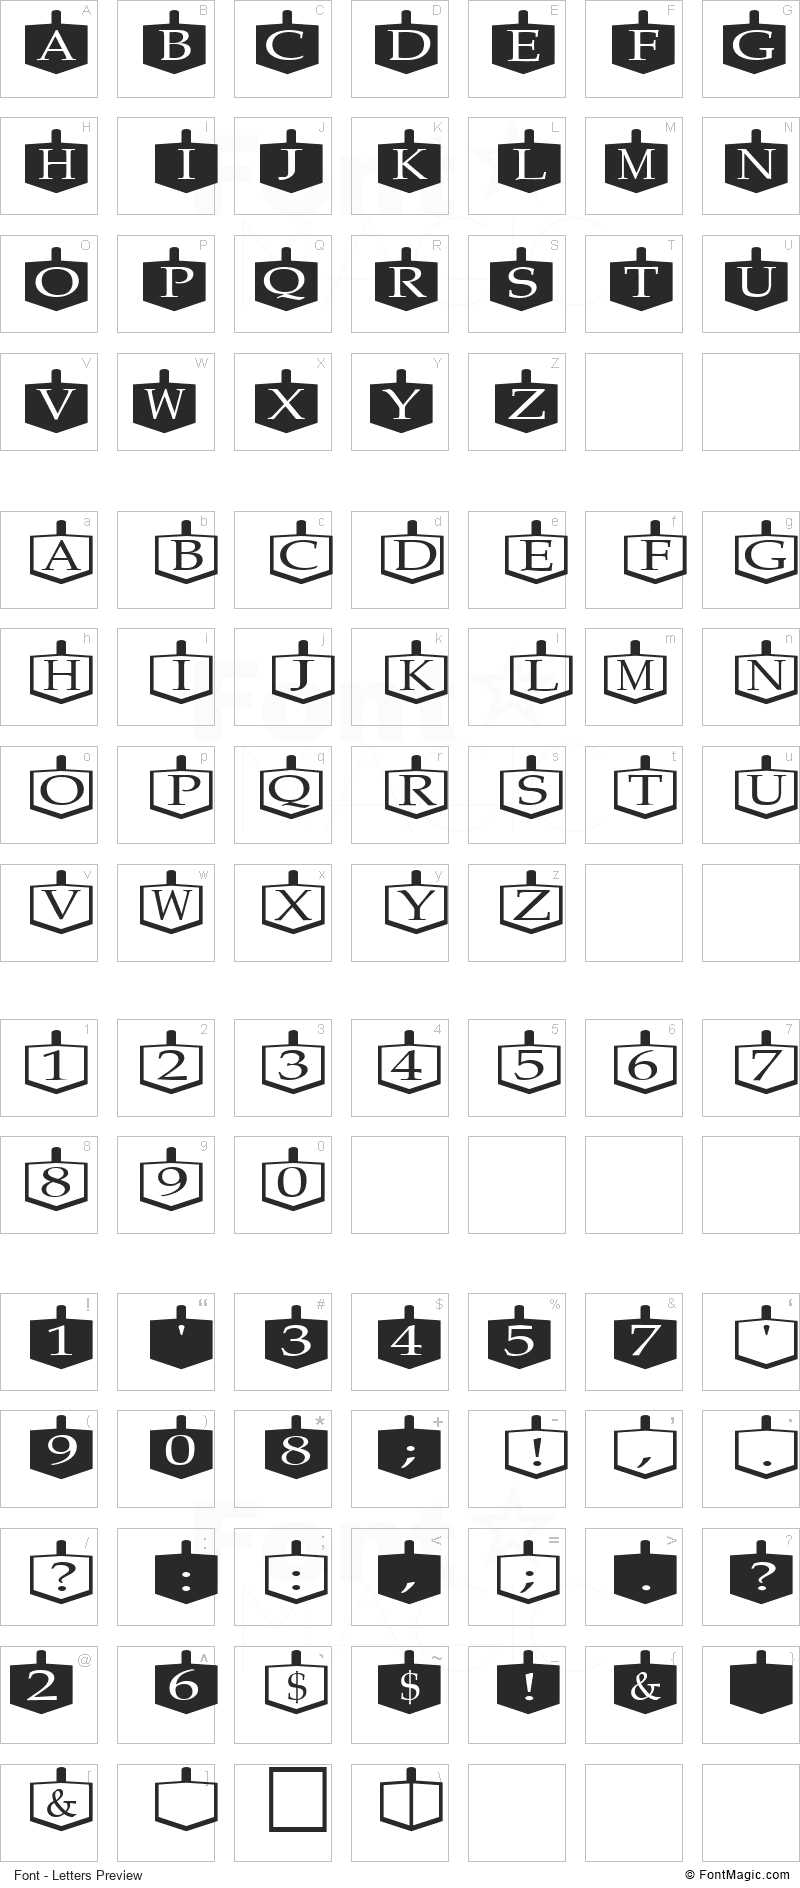 Dreidels Font - All Latters Preview Chart